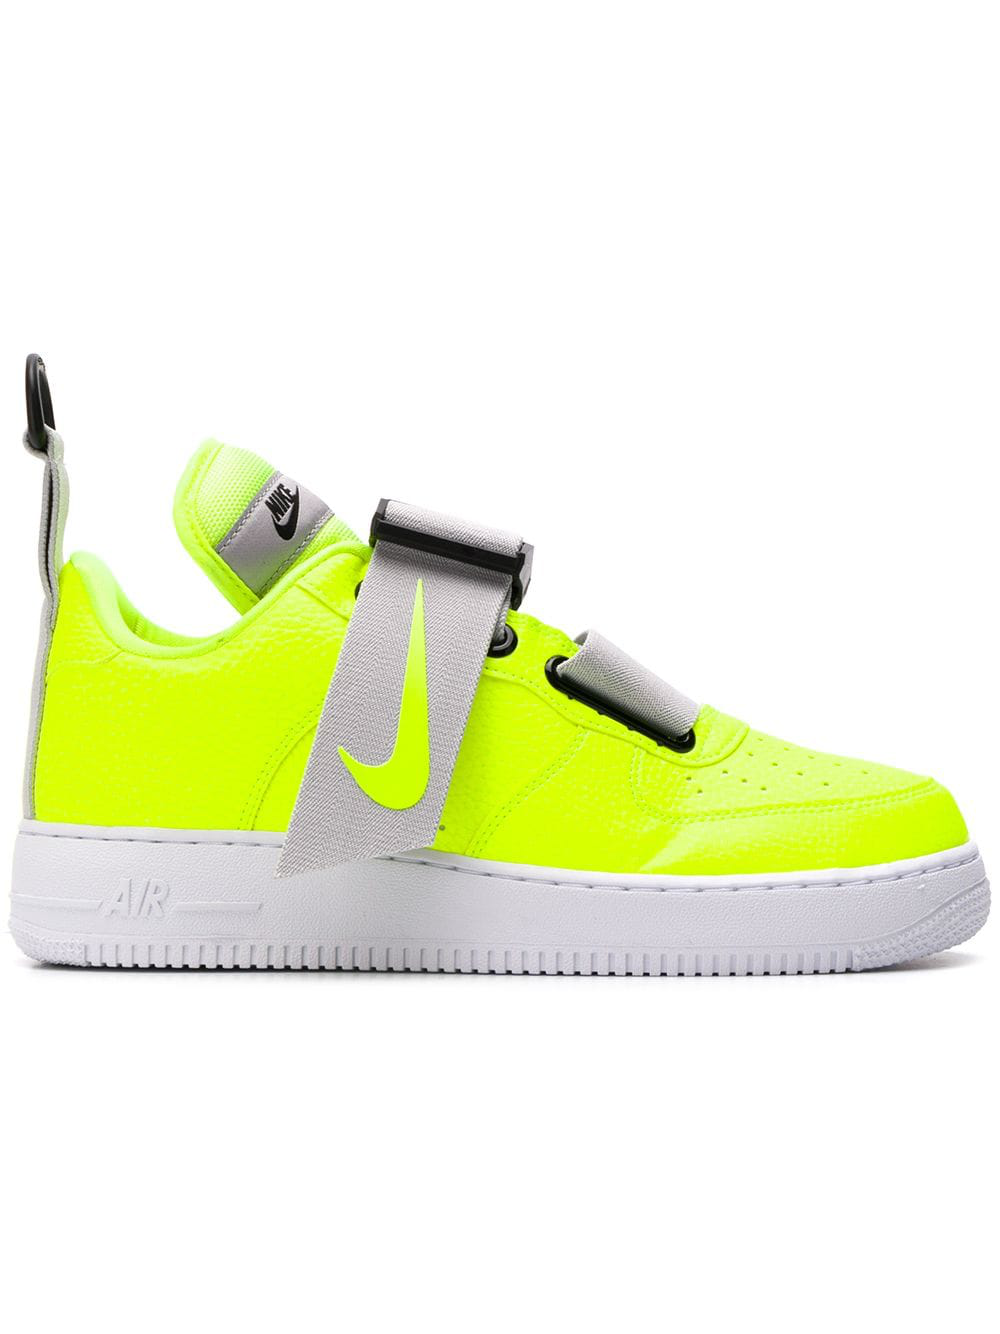 quality design e2a1f c54f3 Nike Men s Air Force 1 Utility Casual Shoes, Yellow